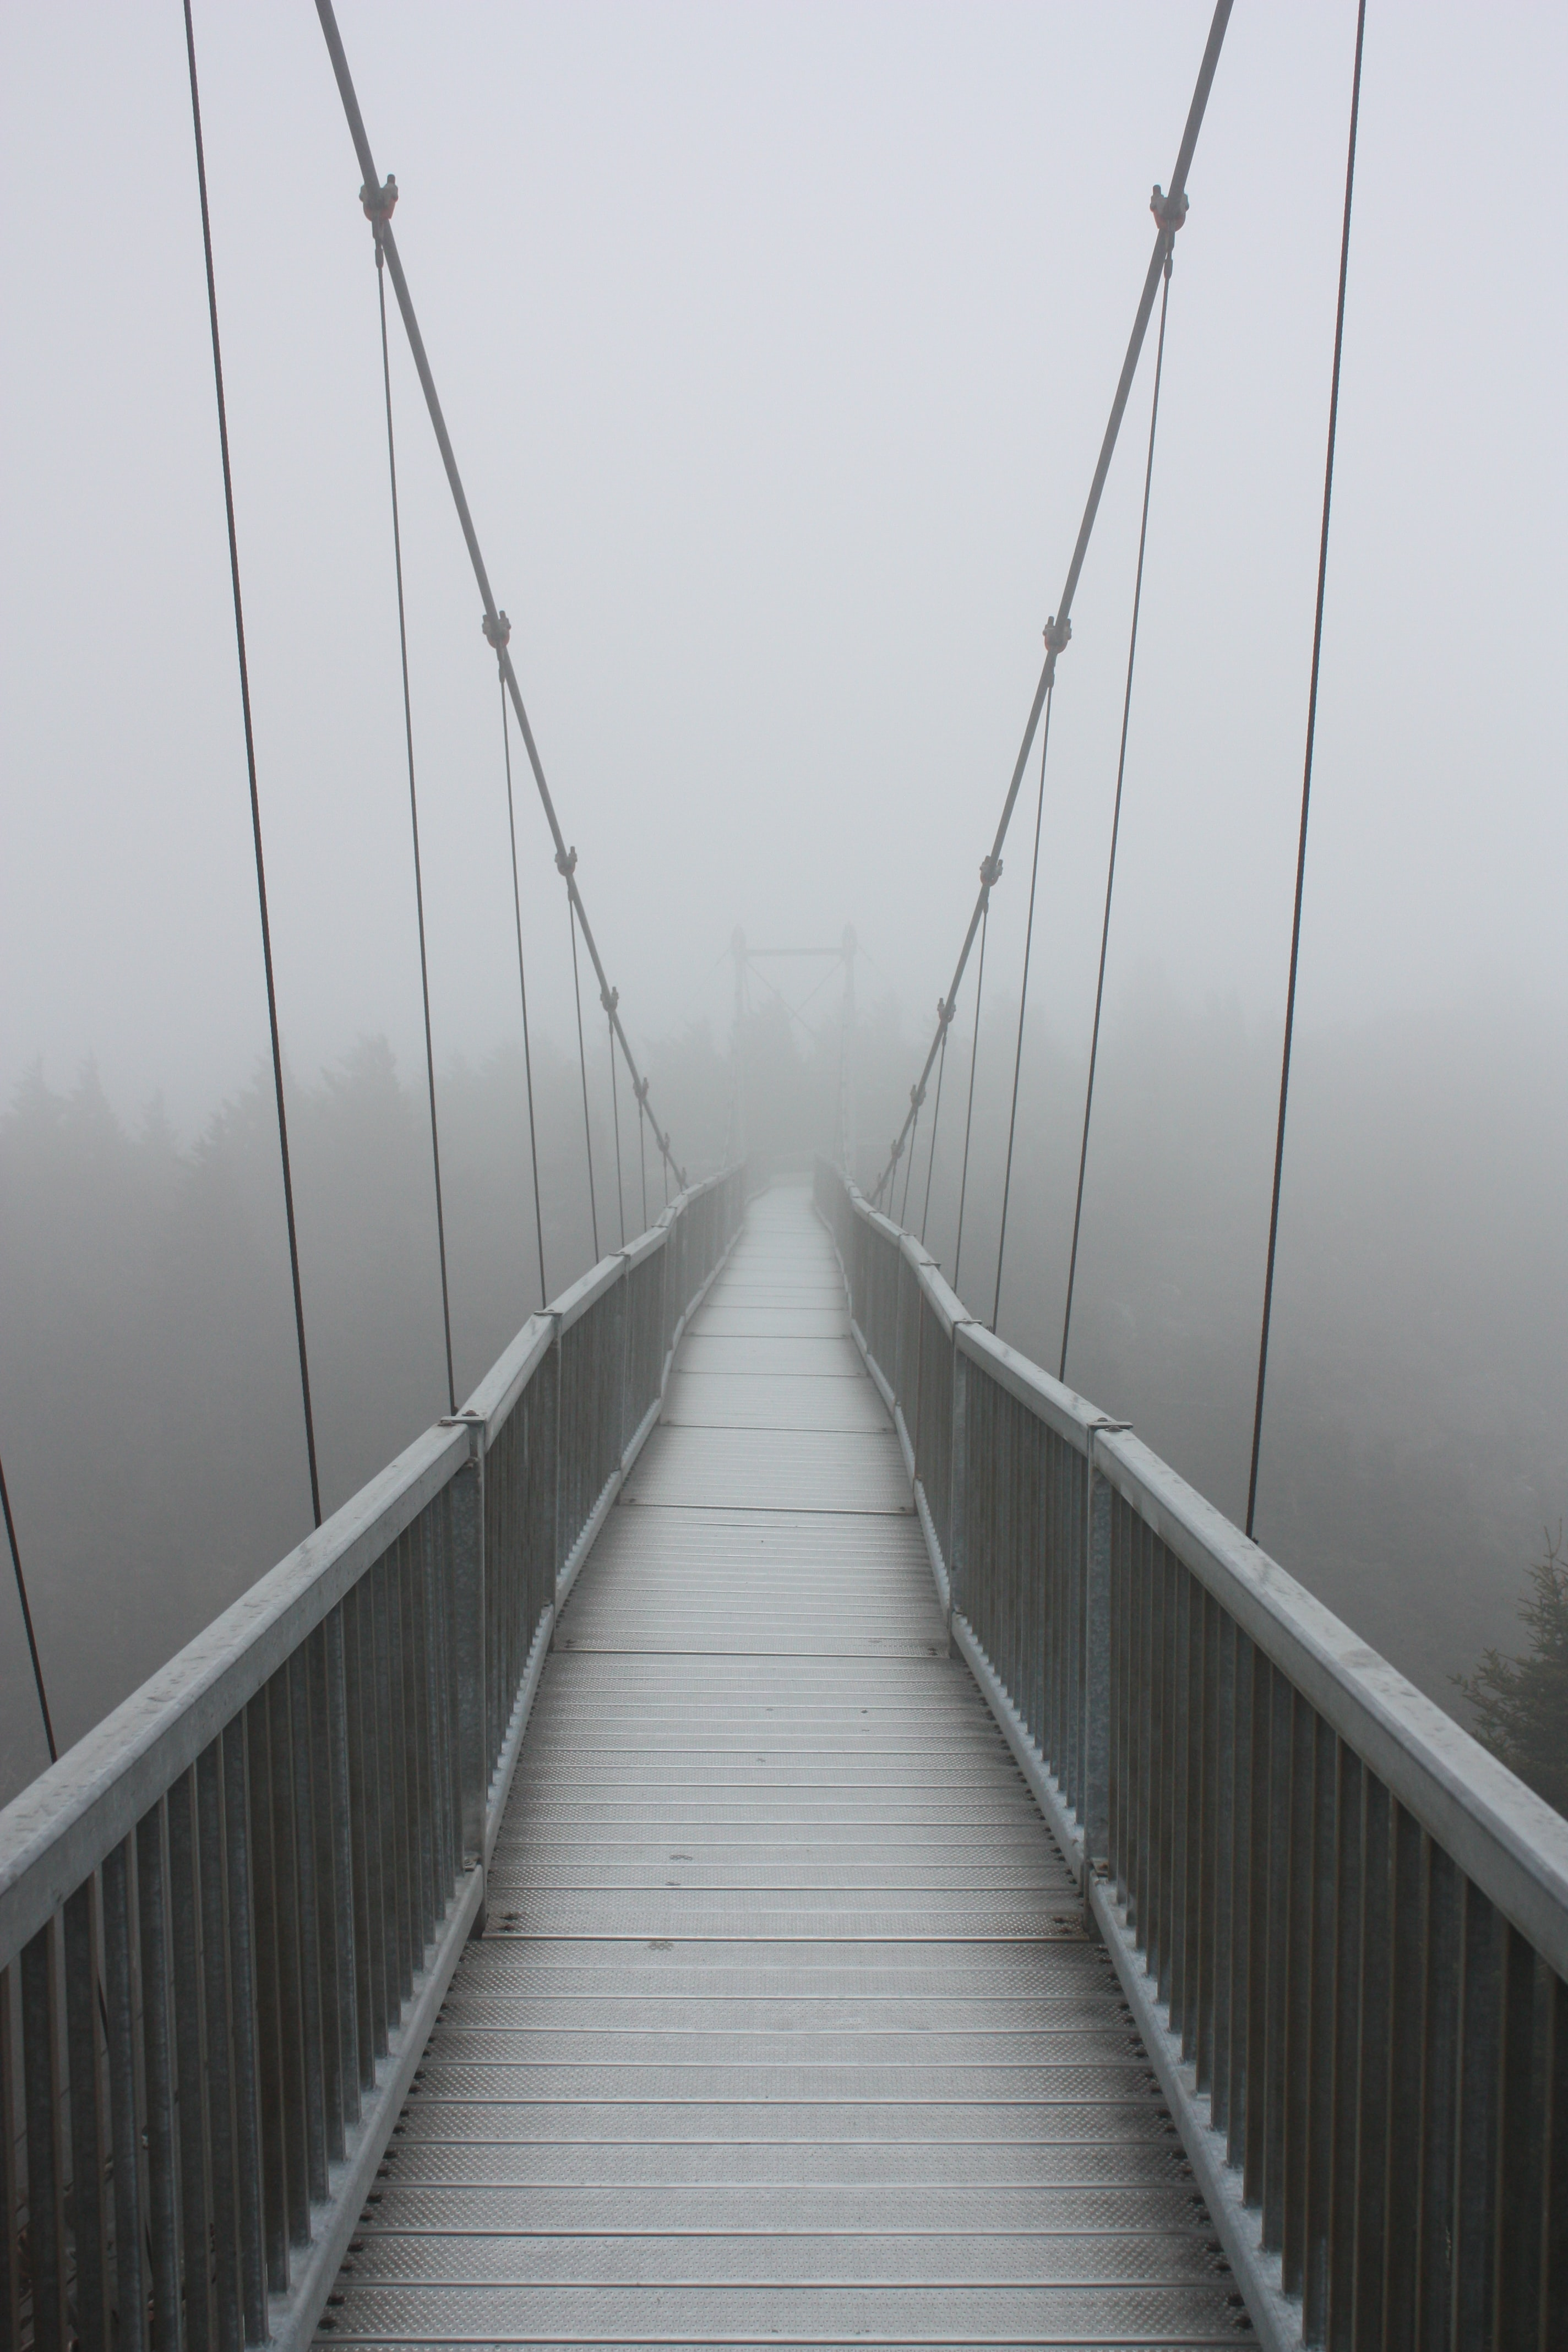 wooden bridge in grayscale photography